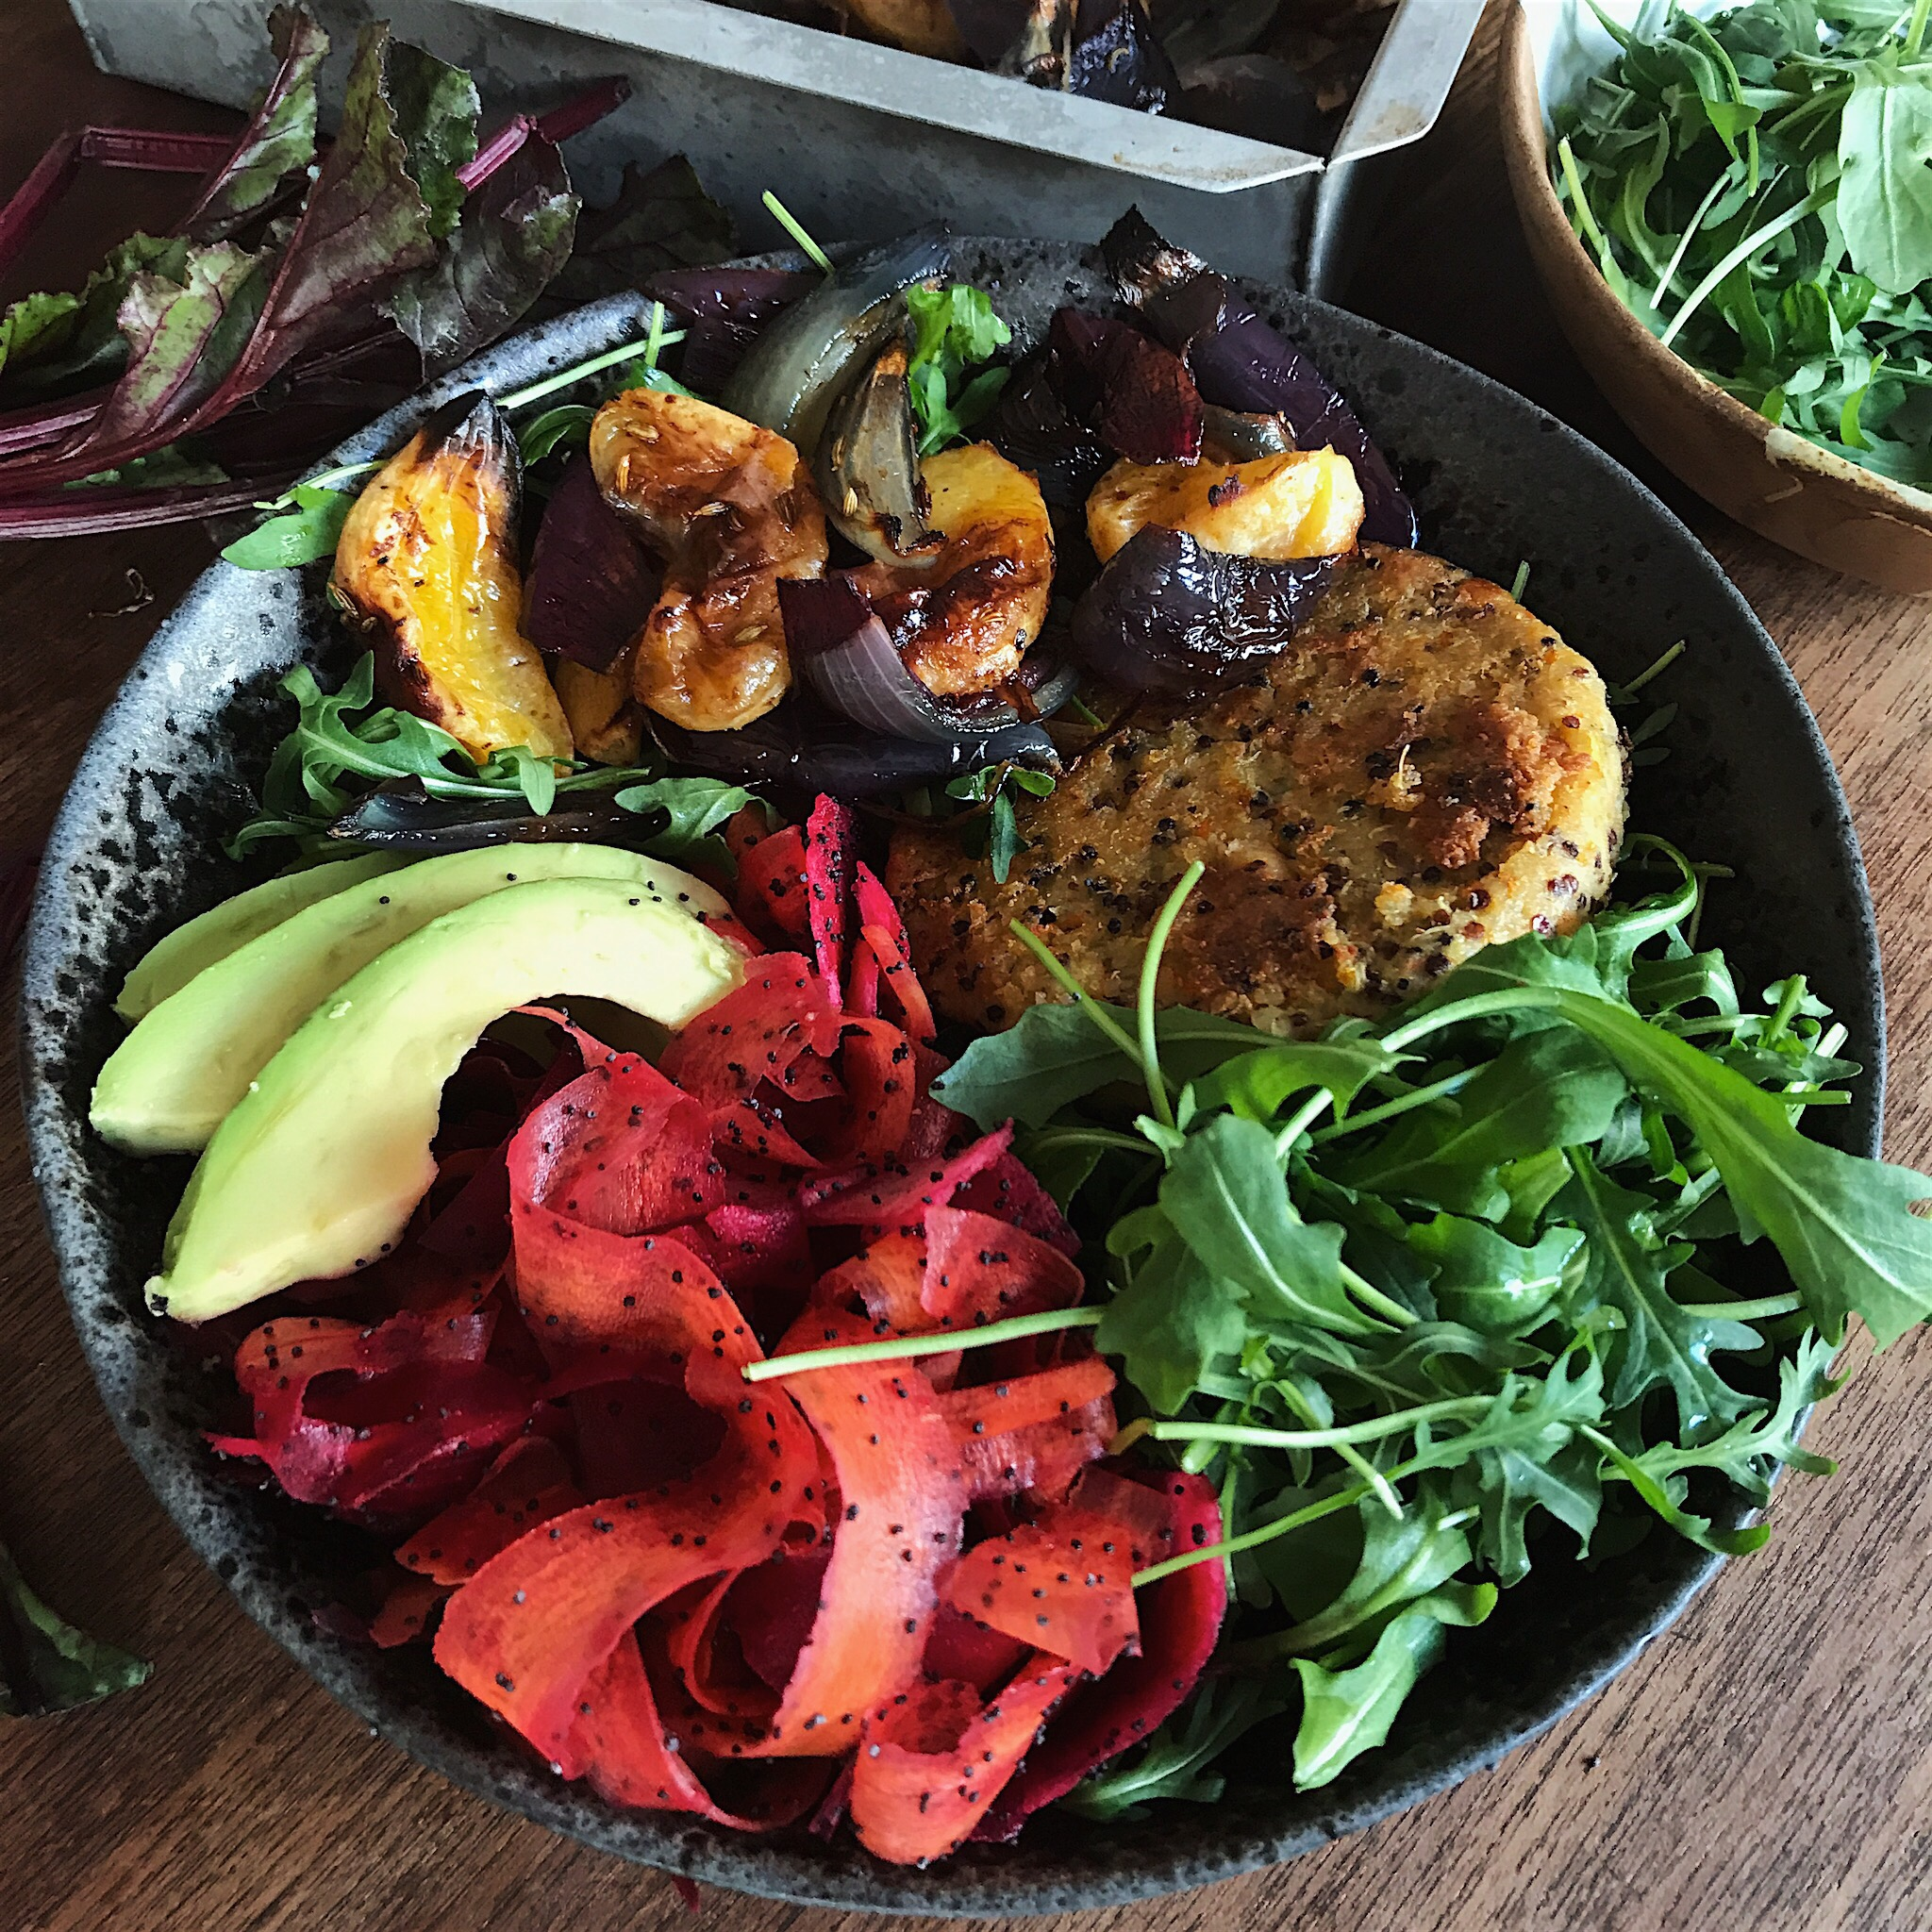 'QUINWAH' BOWL WITH ROASTED ORANGE AND A PICKLED CARROT AND BEETROOT SLAW